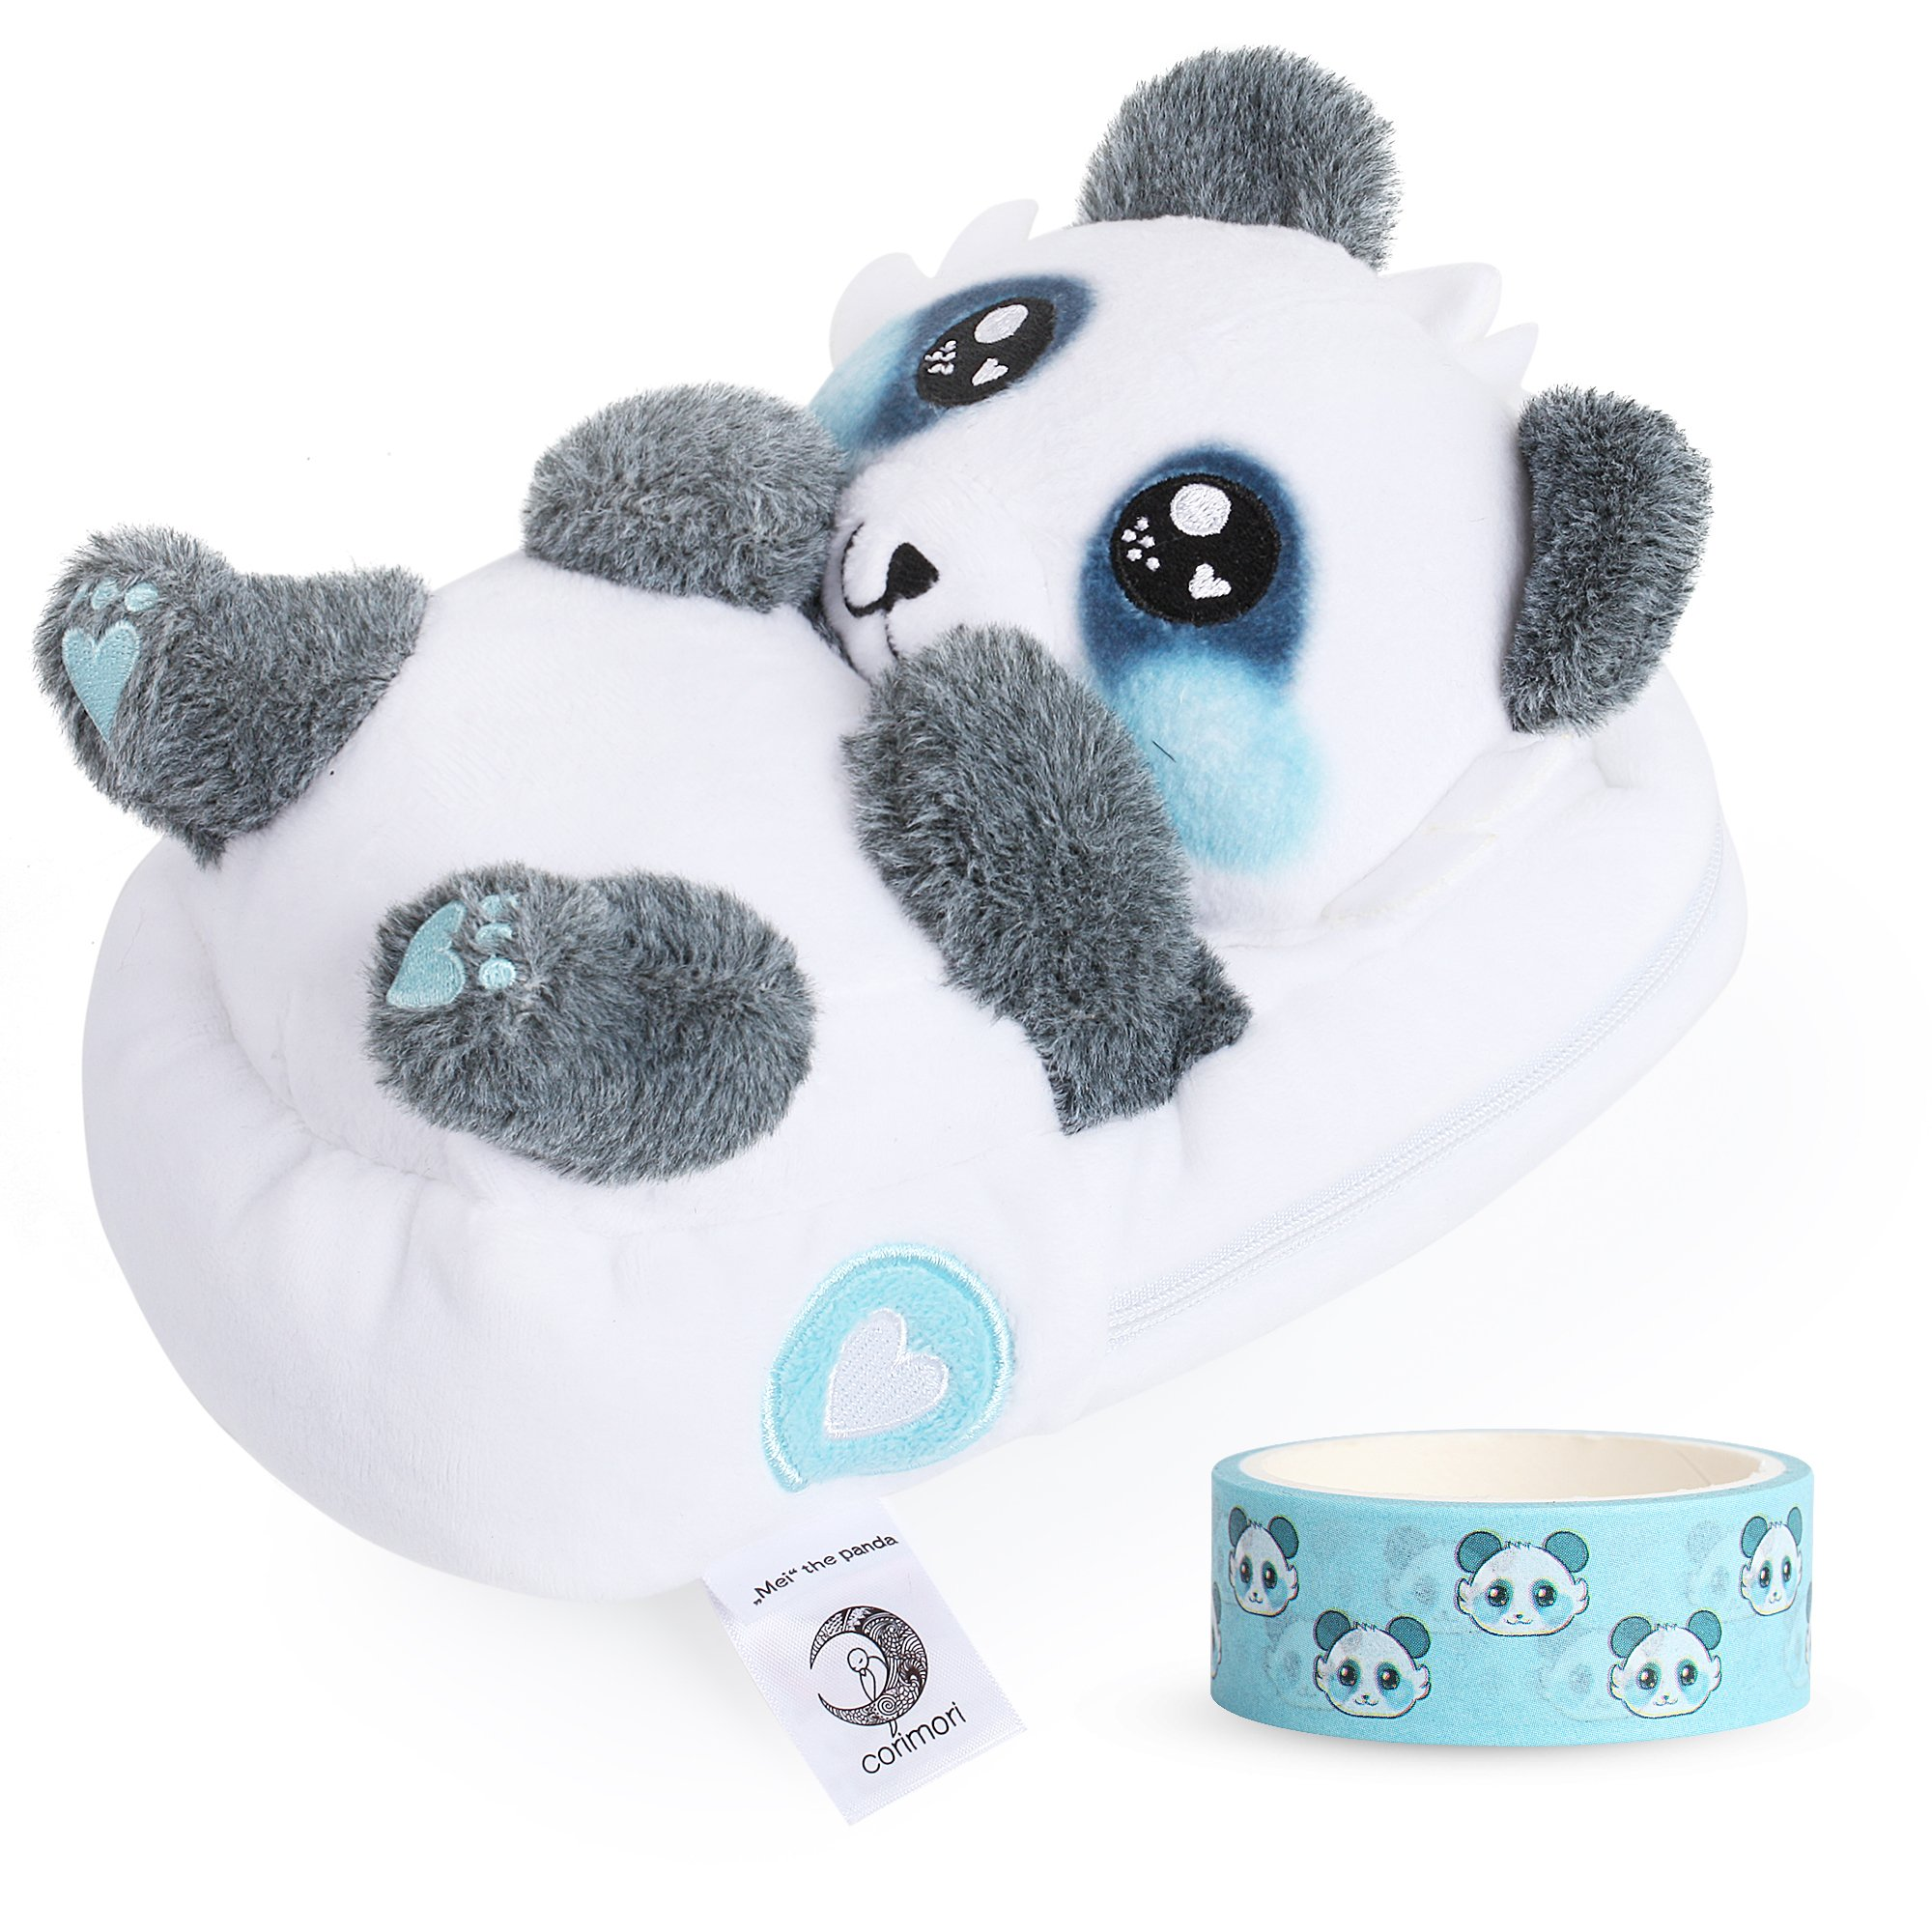 corimori 1845 - Panda Mei 3D Animal Shaped Fluffy Plush Pencil Case